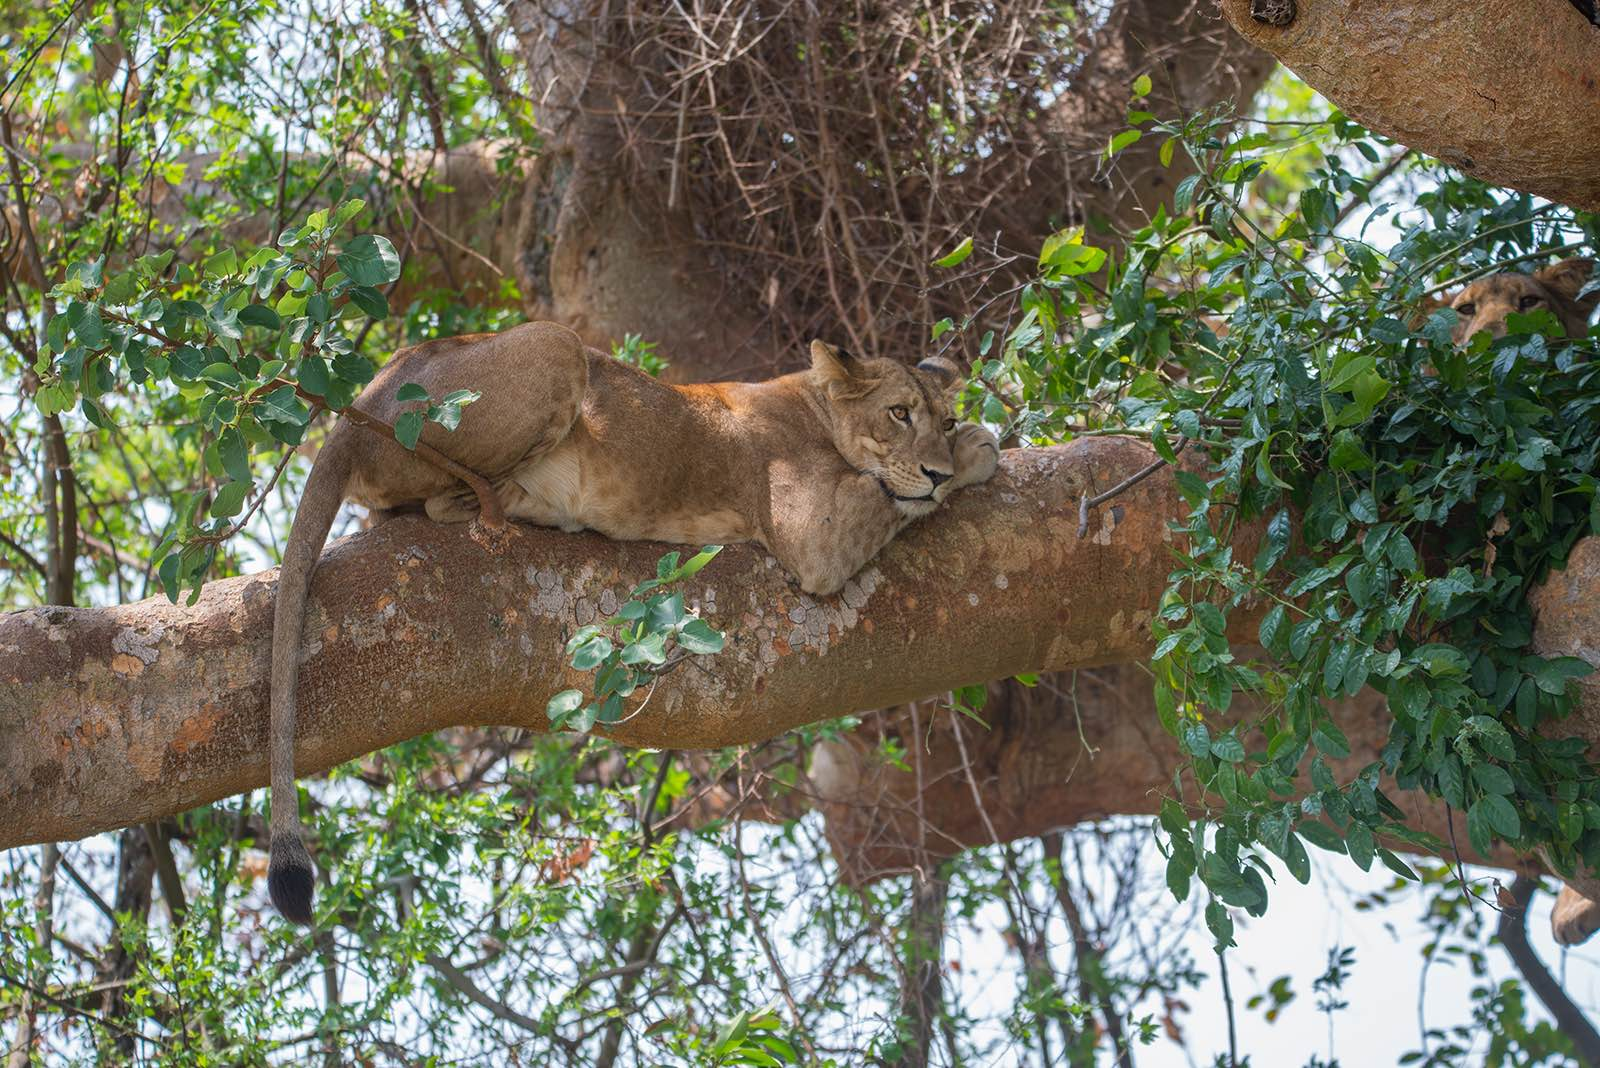 Dozy lions in the fig trees